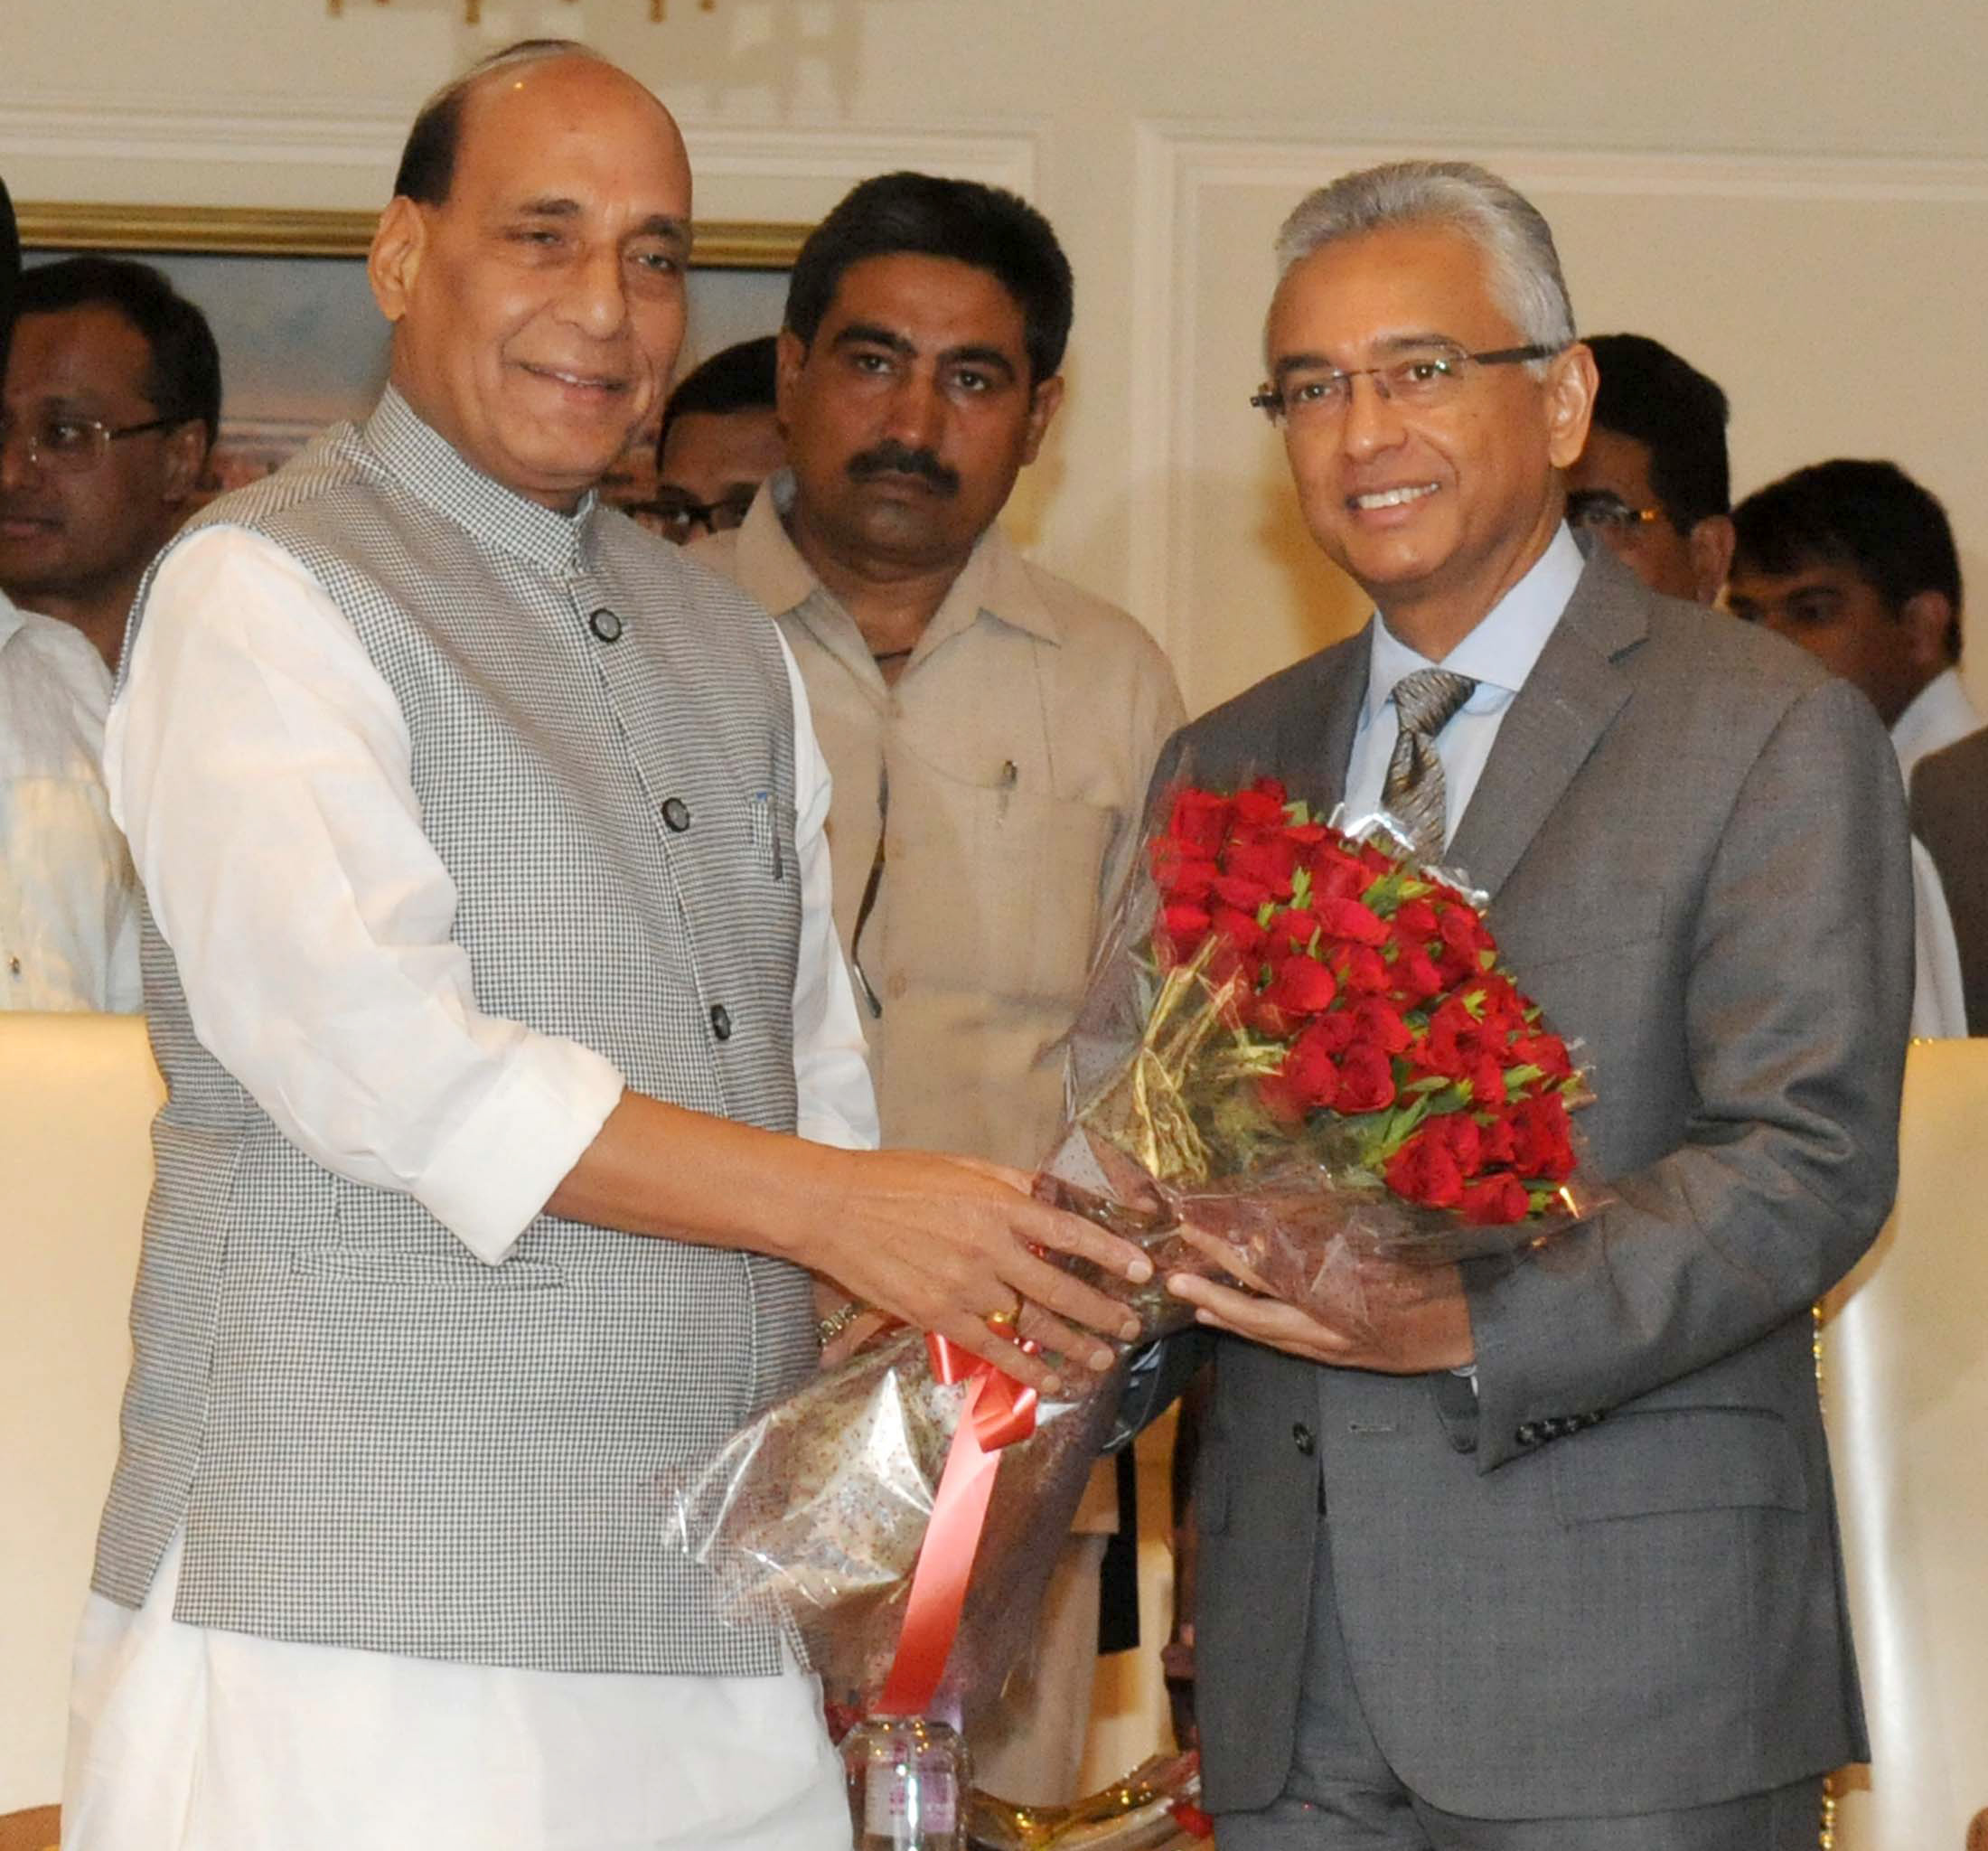 The Union Home Minister, Shri Rajnath Singh meeting the Prime Minister of the Republic of Mauritius, Mr. Pravind Kumar Jugnauth, in New Delhi on May 26, 2017.